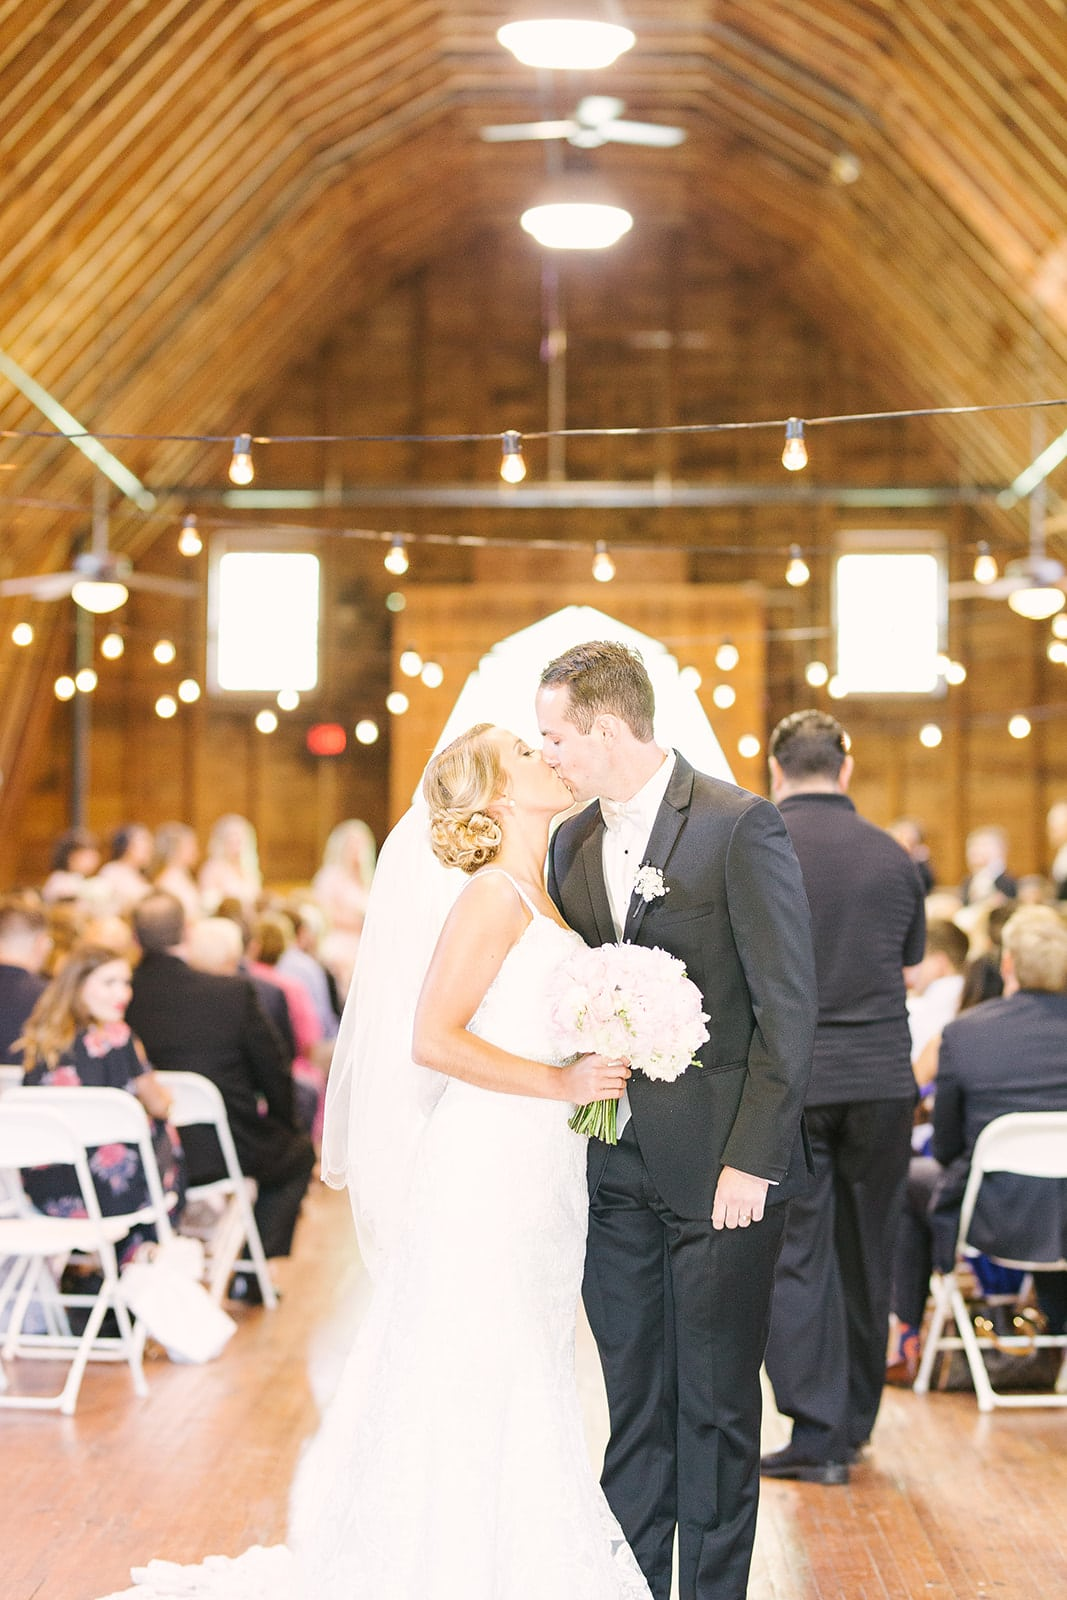 Bride and groom share a kiss following their spring wedding ceremony at The Diary Barn coordinated by Magnificent Moments Weddings